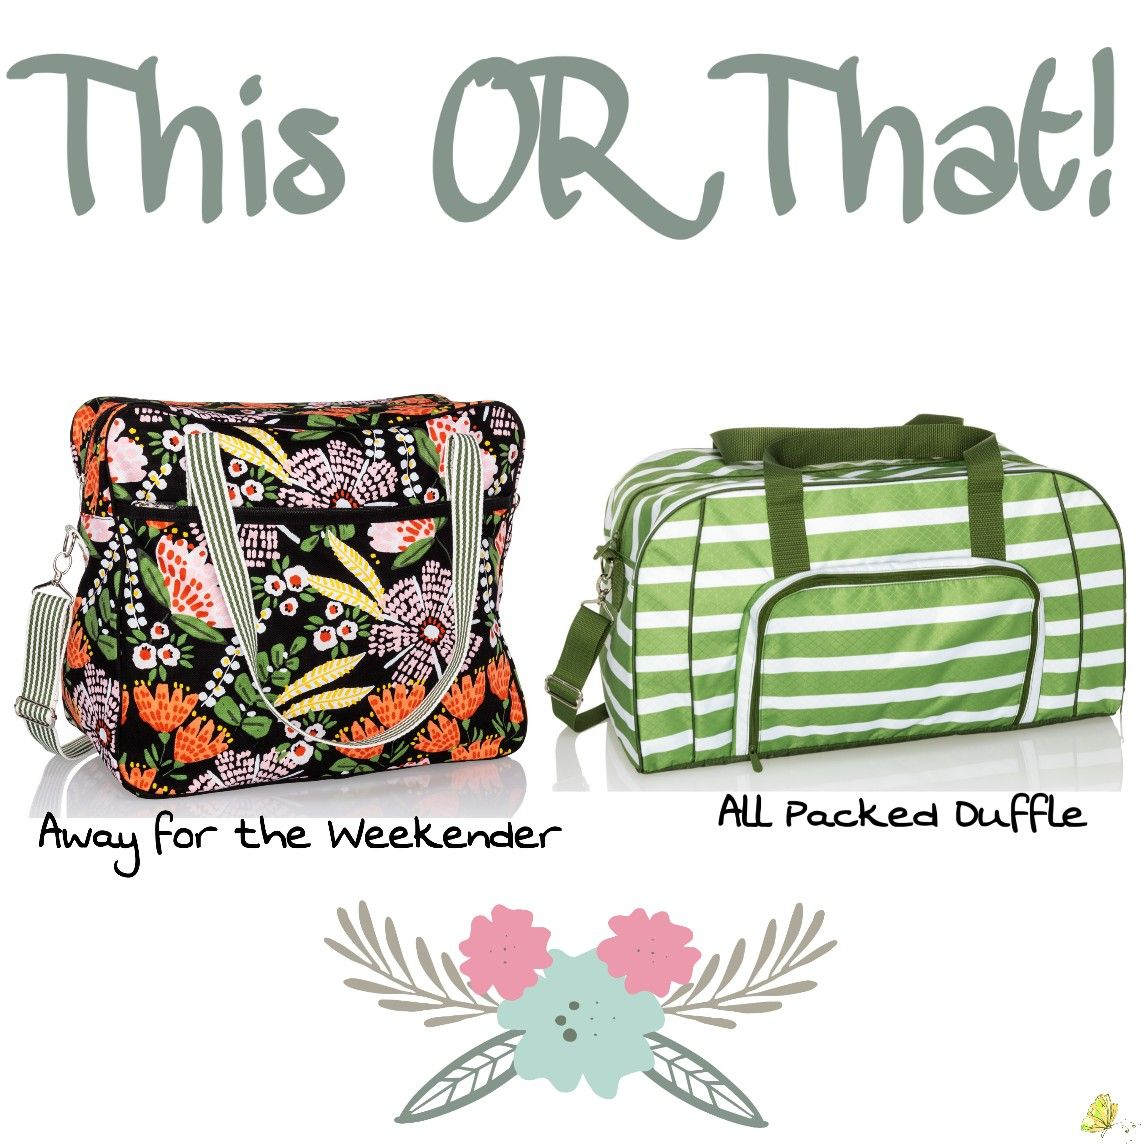 547e9ca5db Away for the Weekender or All Packed Duffle!  thirtyone  spring  thisorthat  www.mythirtyone.com 1735467